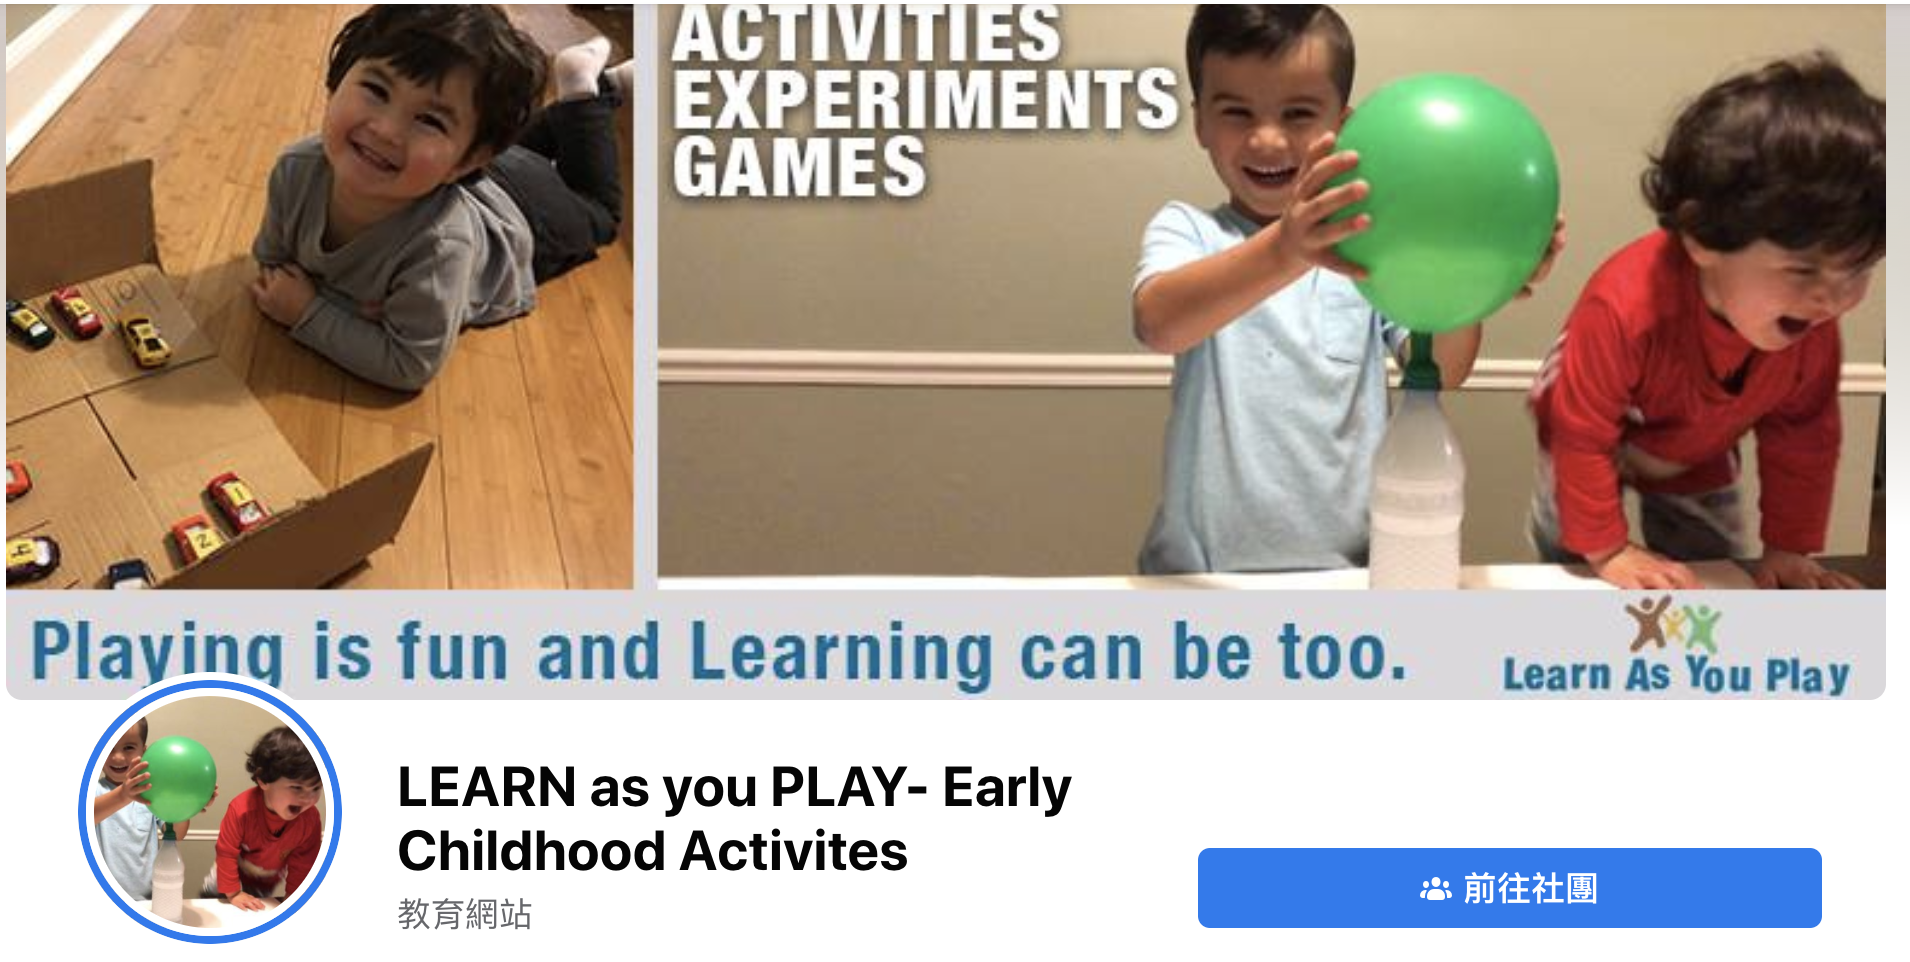 LEARN as you PLAY-Early Childhood Activities